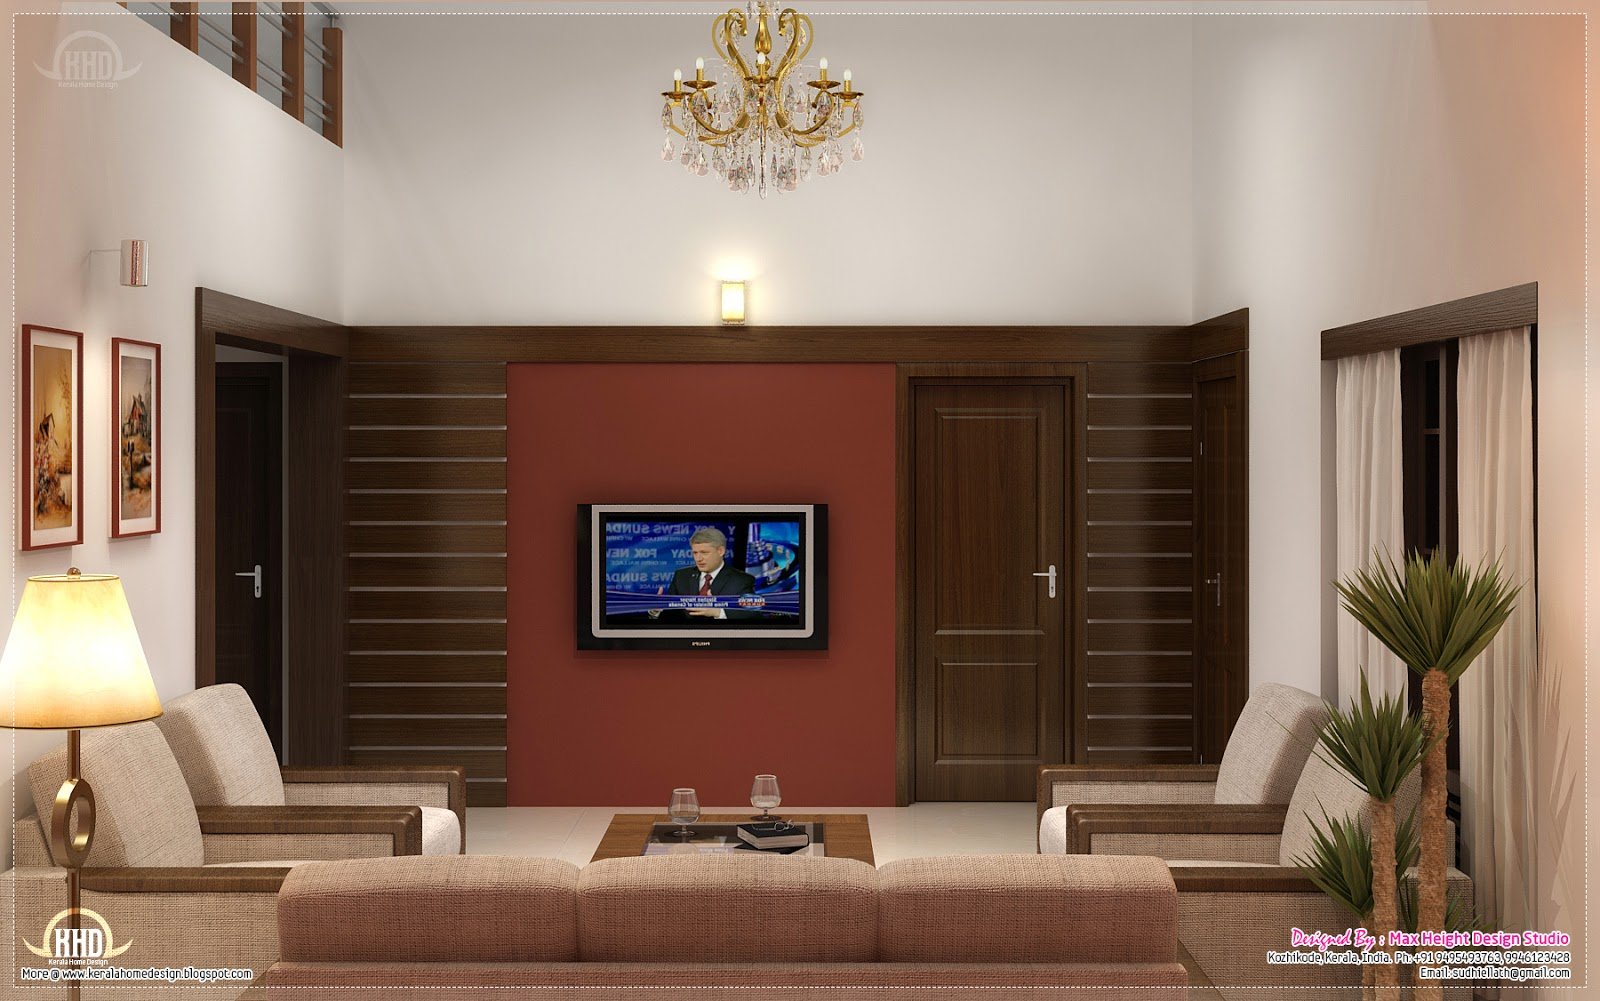 Home interior design ideas home kerala plans for Kerala homes interior designs